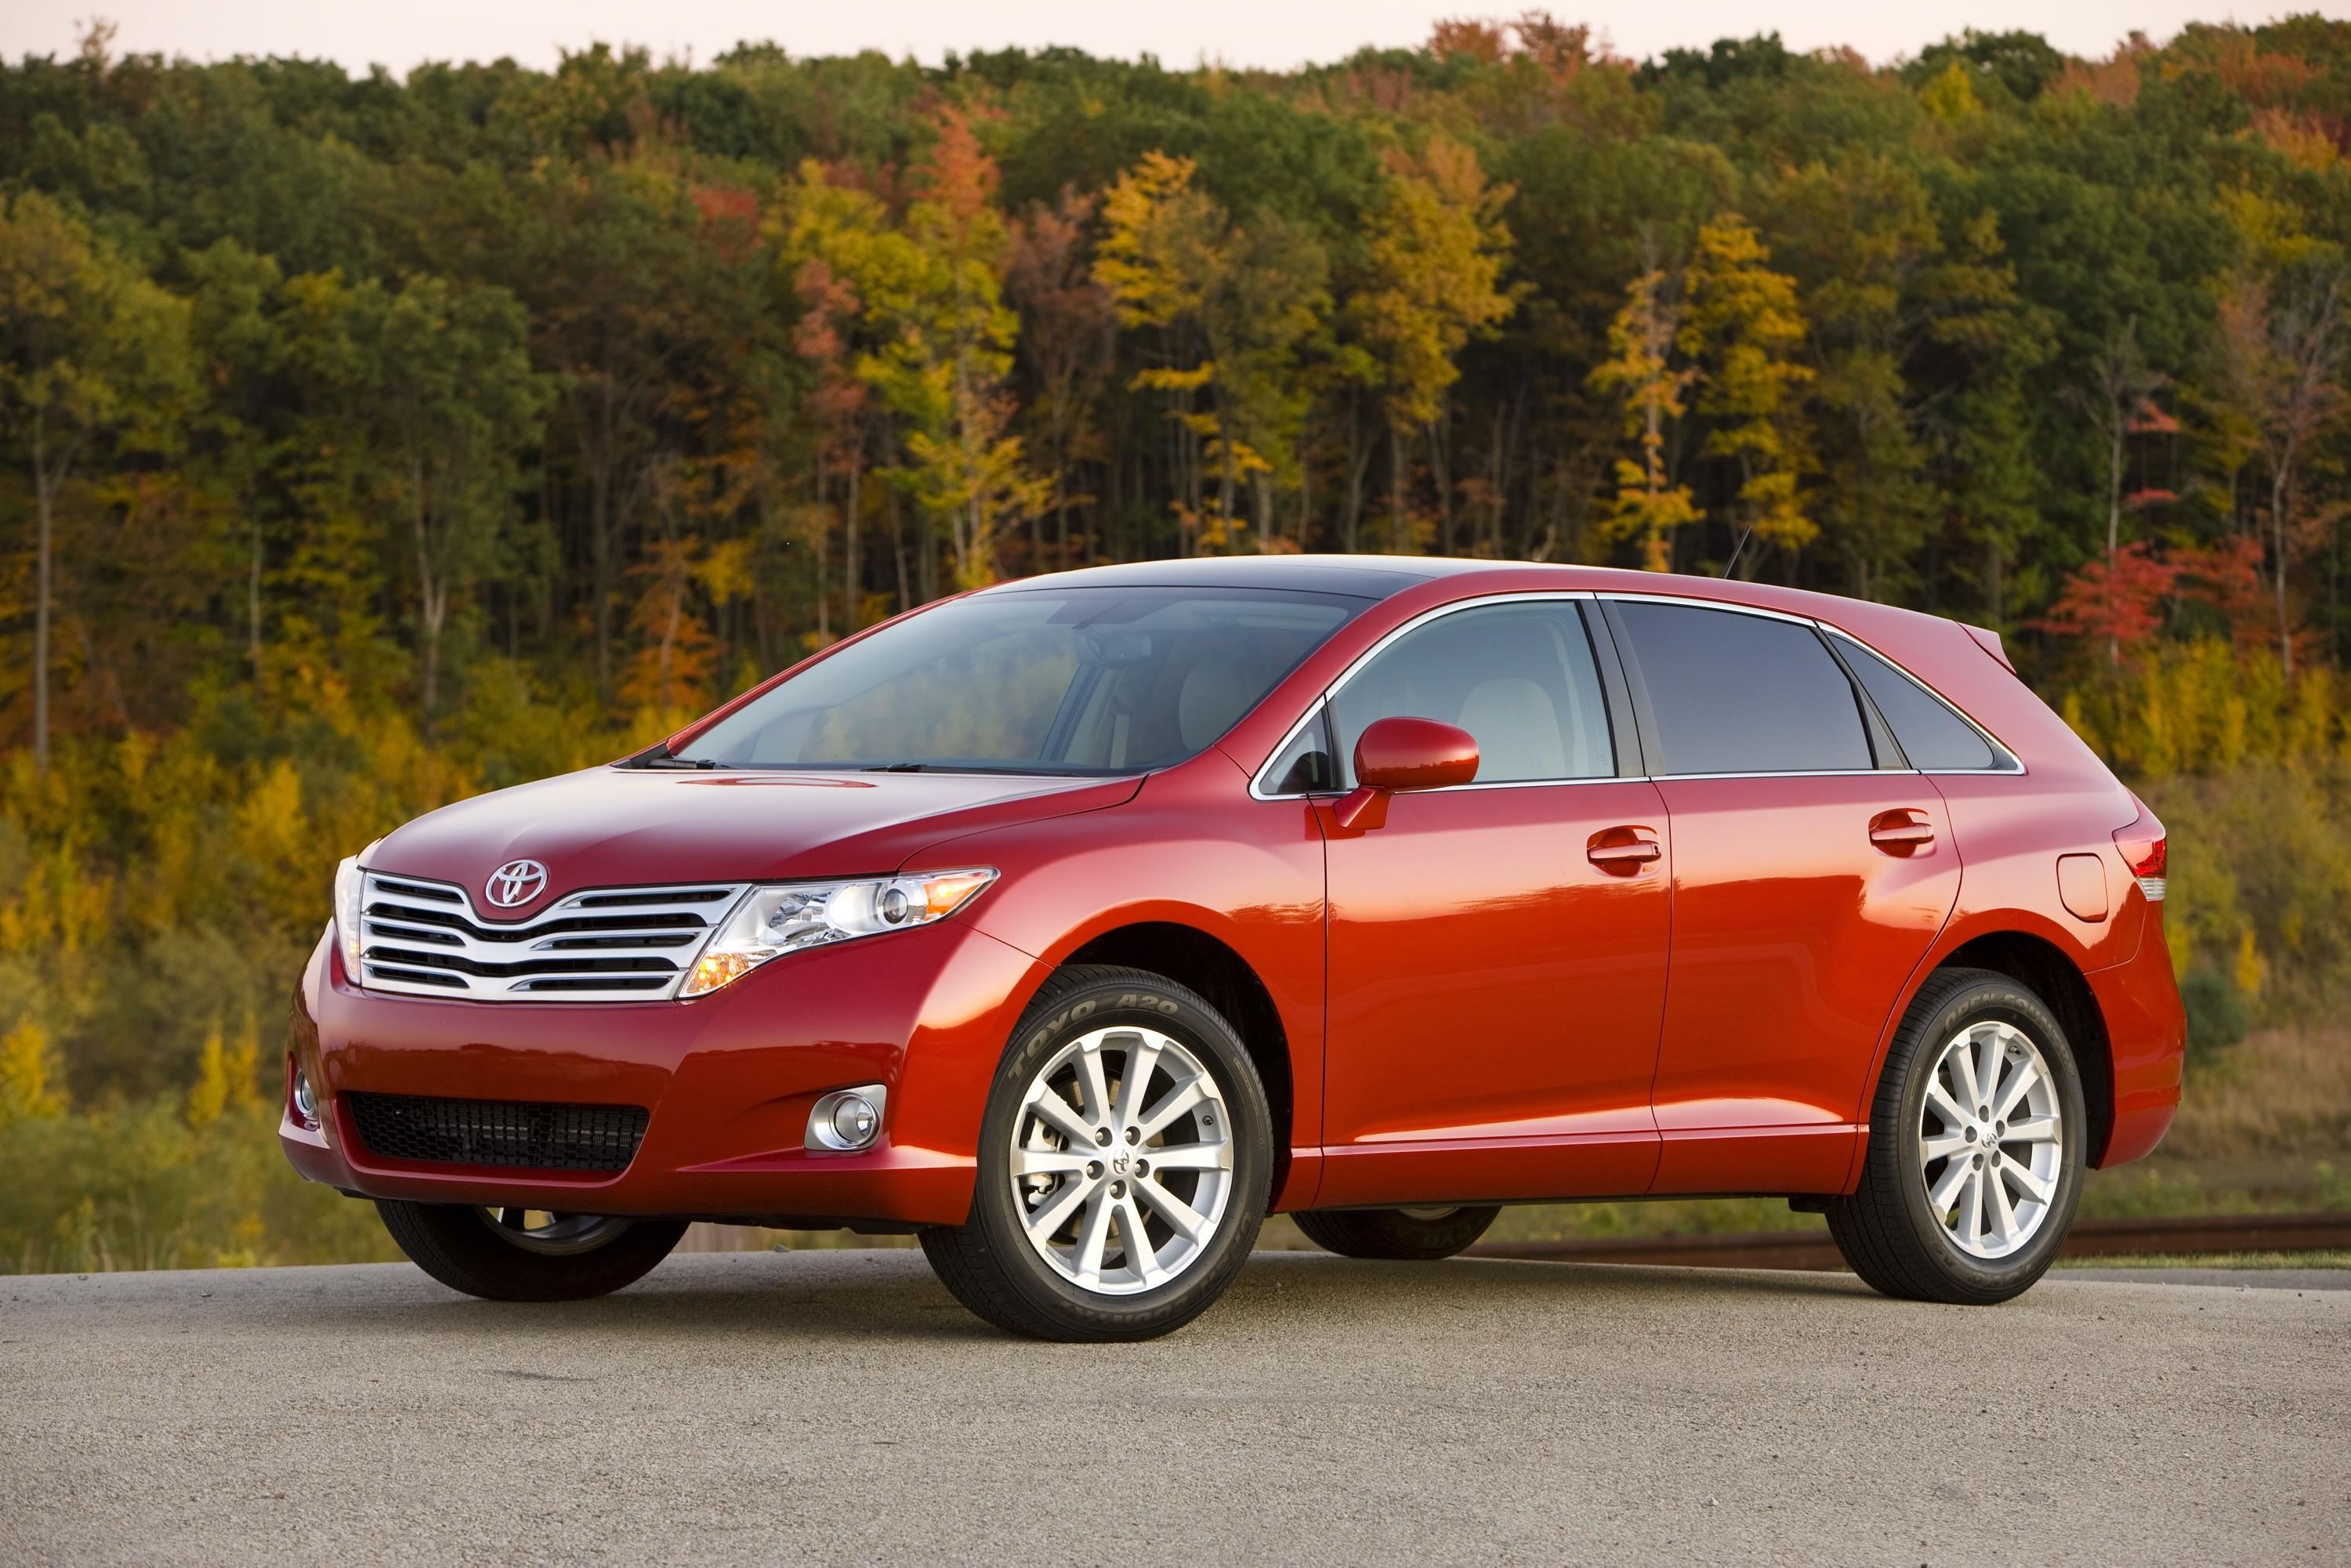 The Toyota Venza and the Honda Crosstour are really just a new generation of